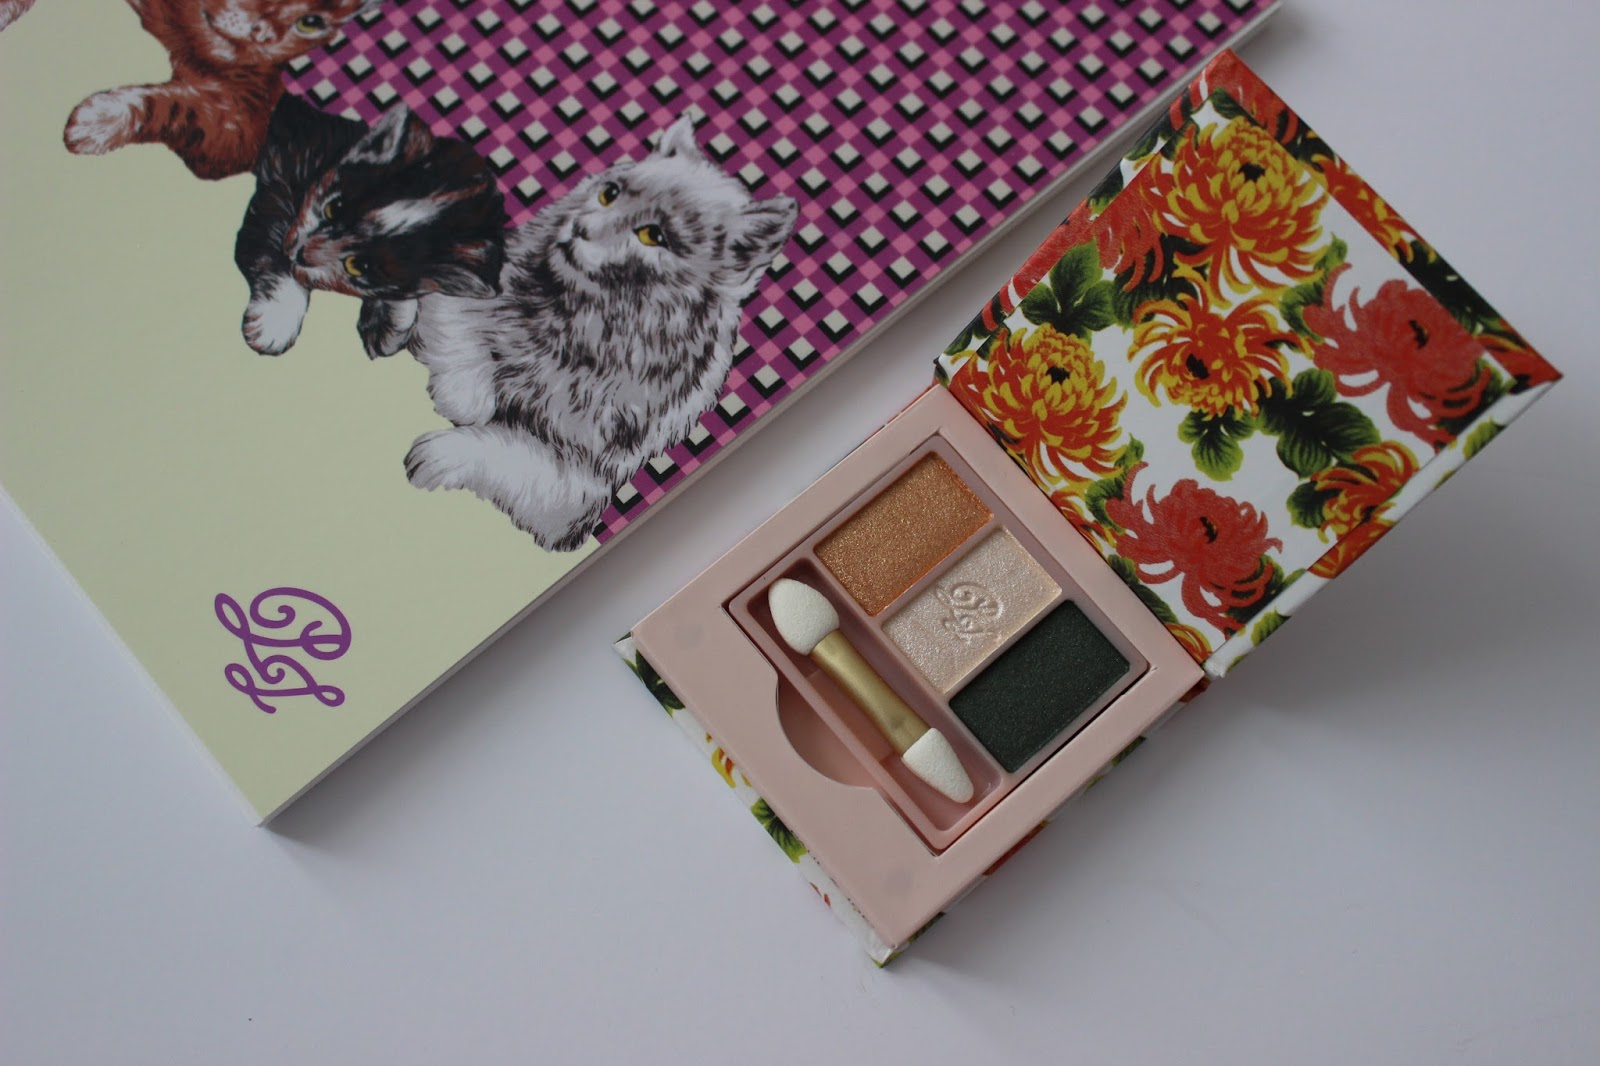 Paul and Joe summer makeup launches